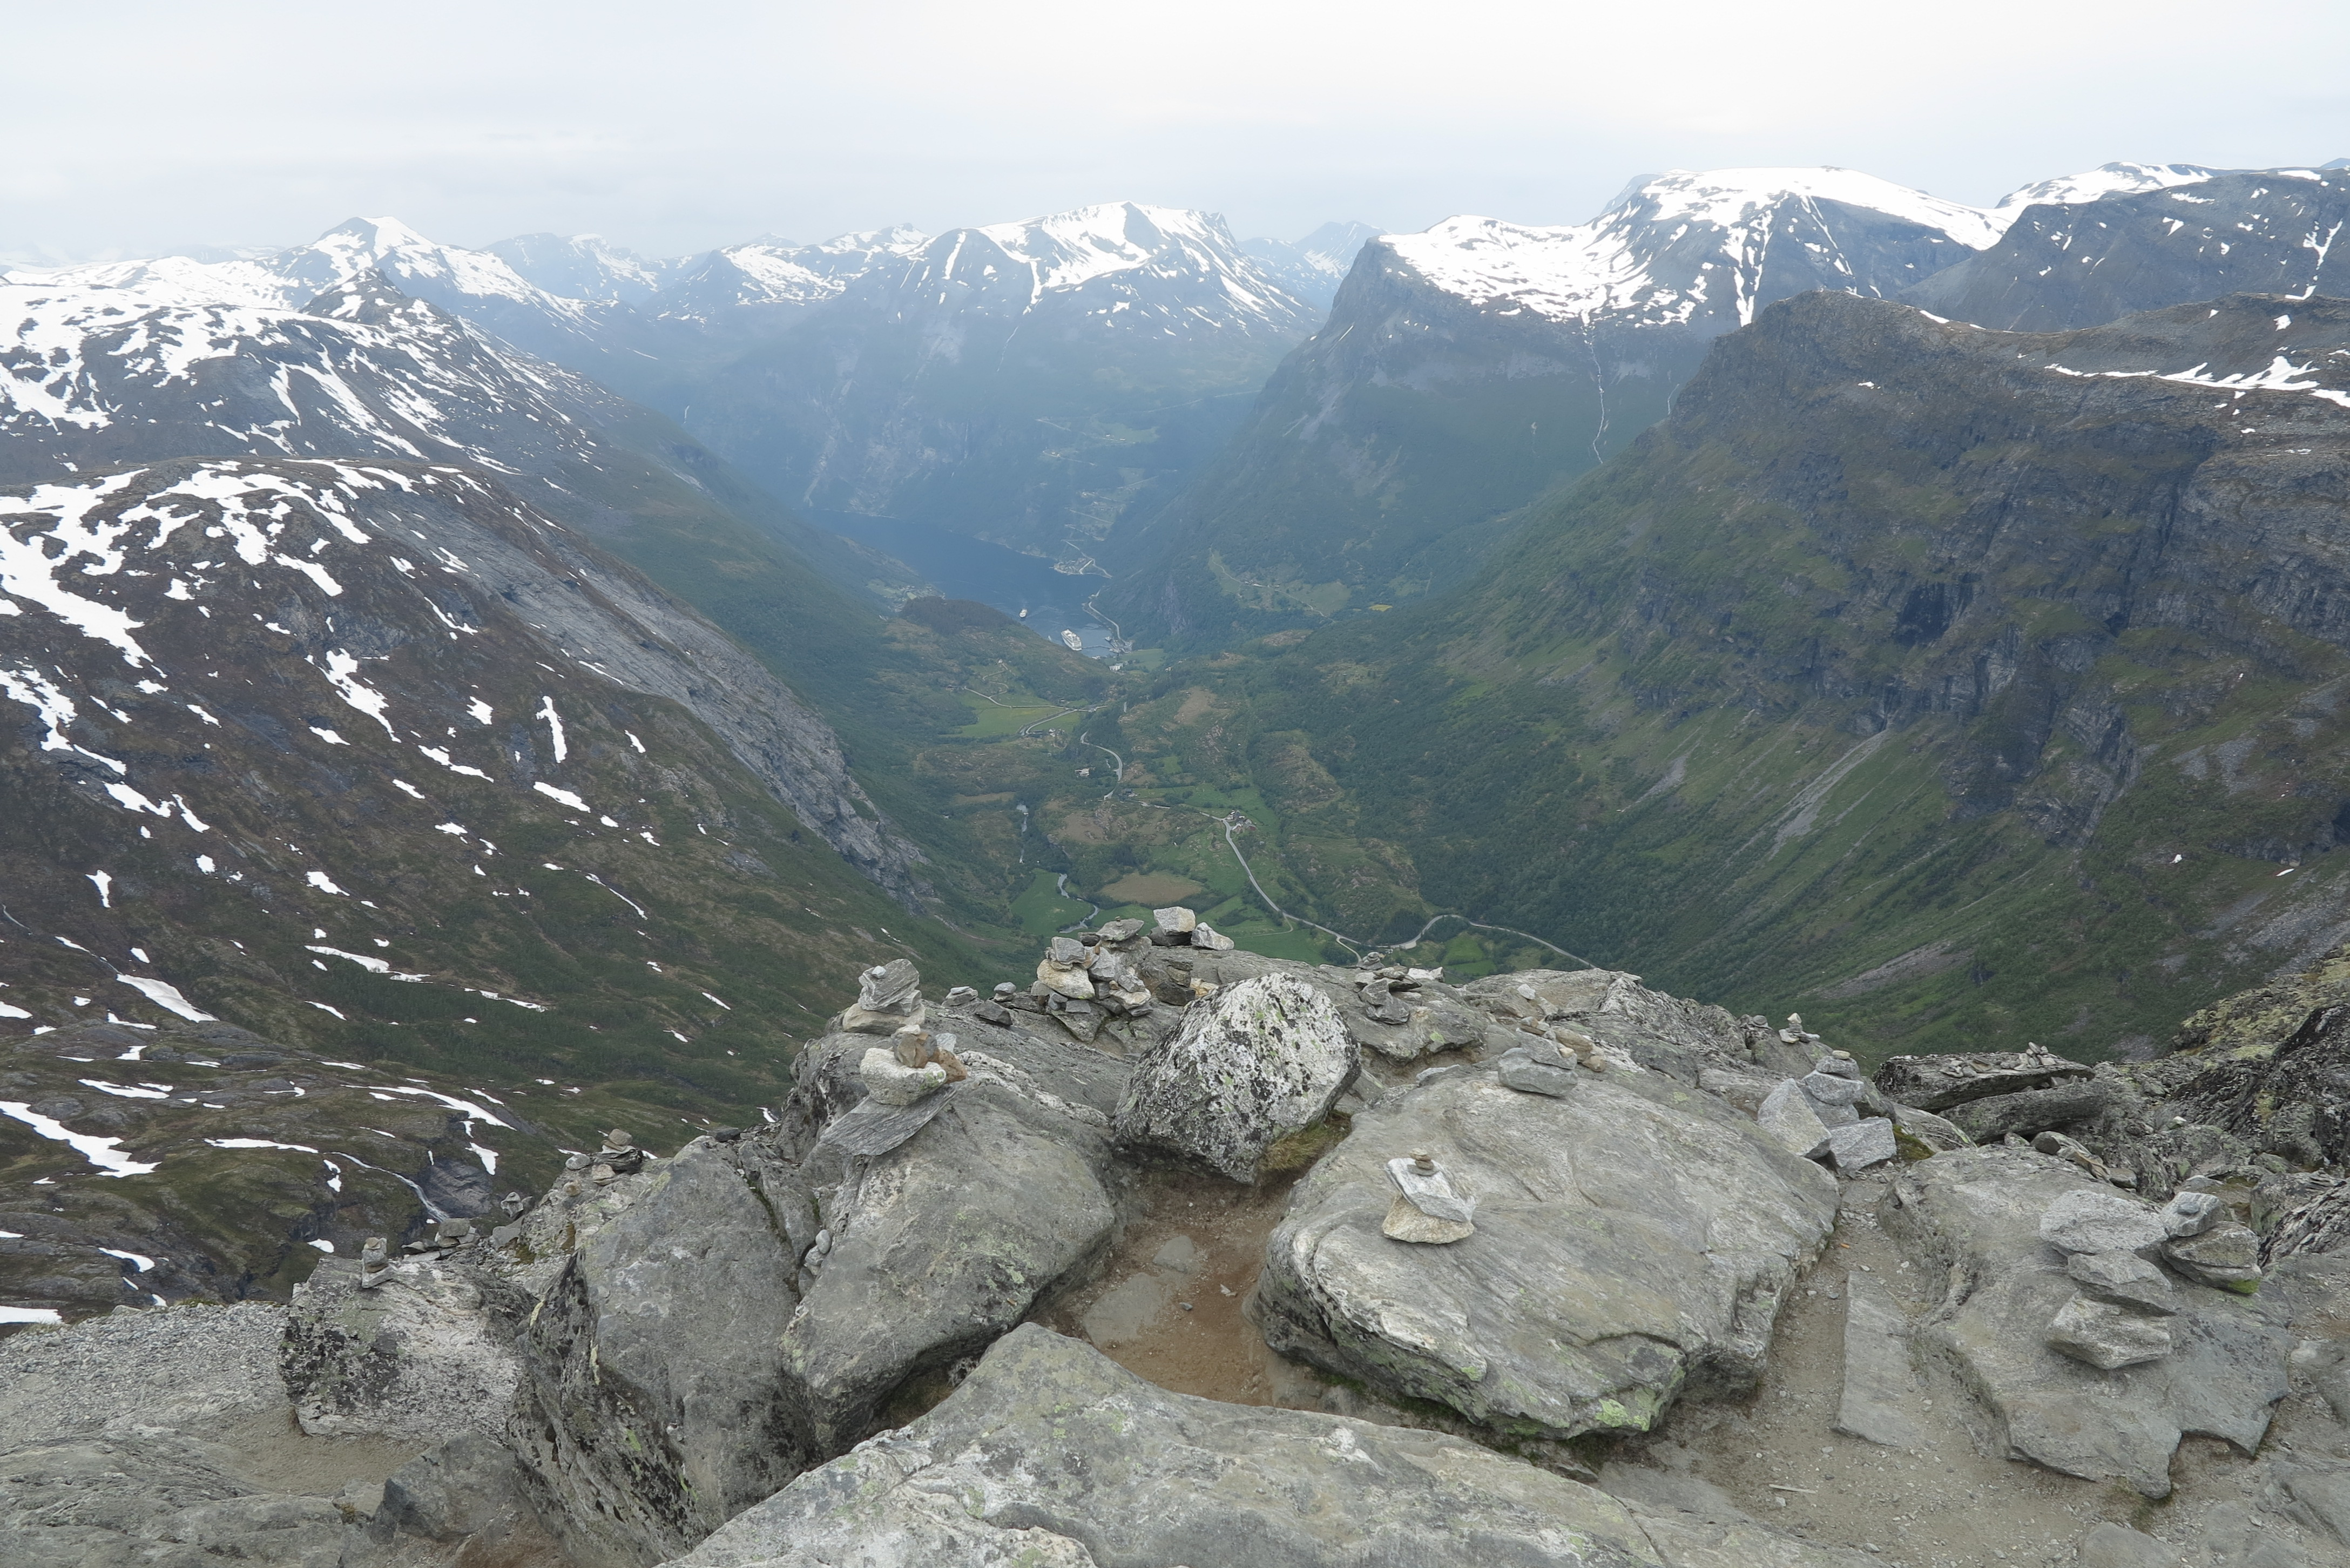 Summit worth seeing: The view from the top of Mount Dalsnibba, including a cruise ship in the fjord way below